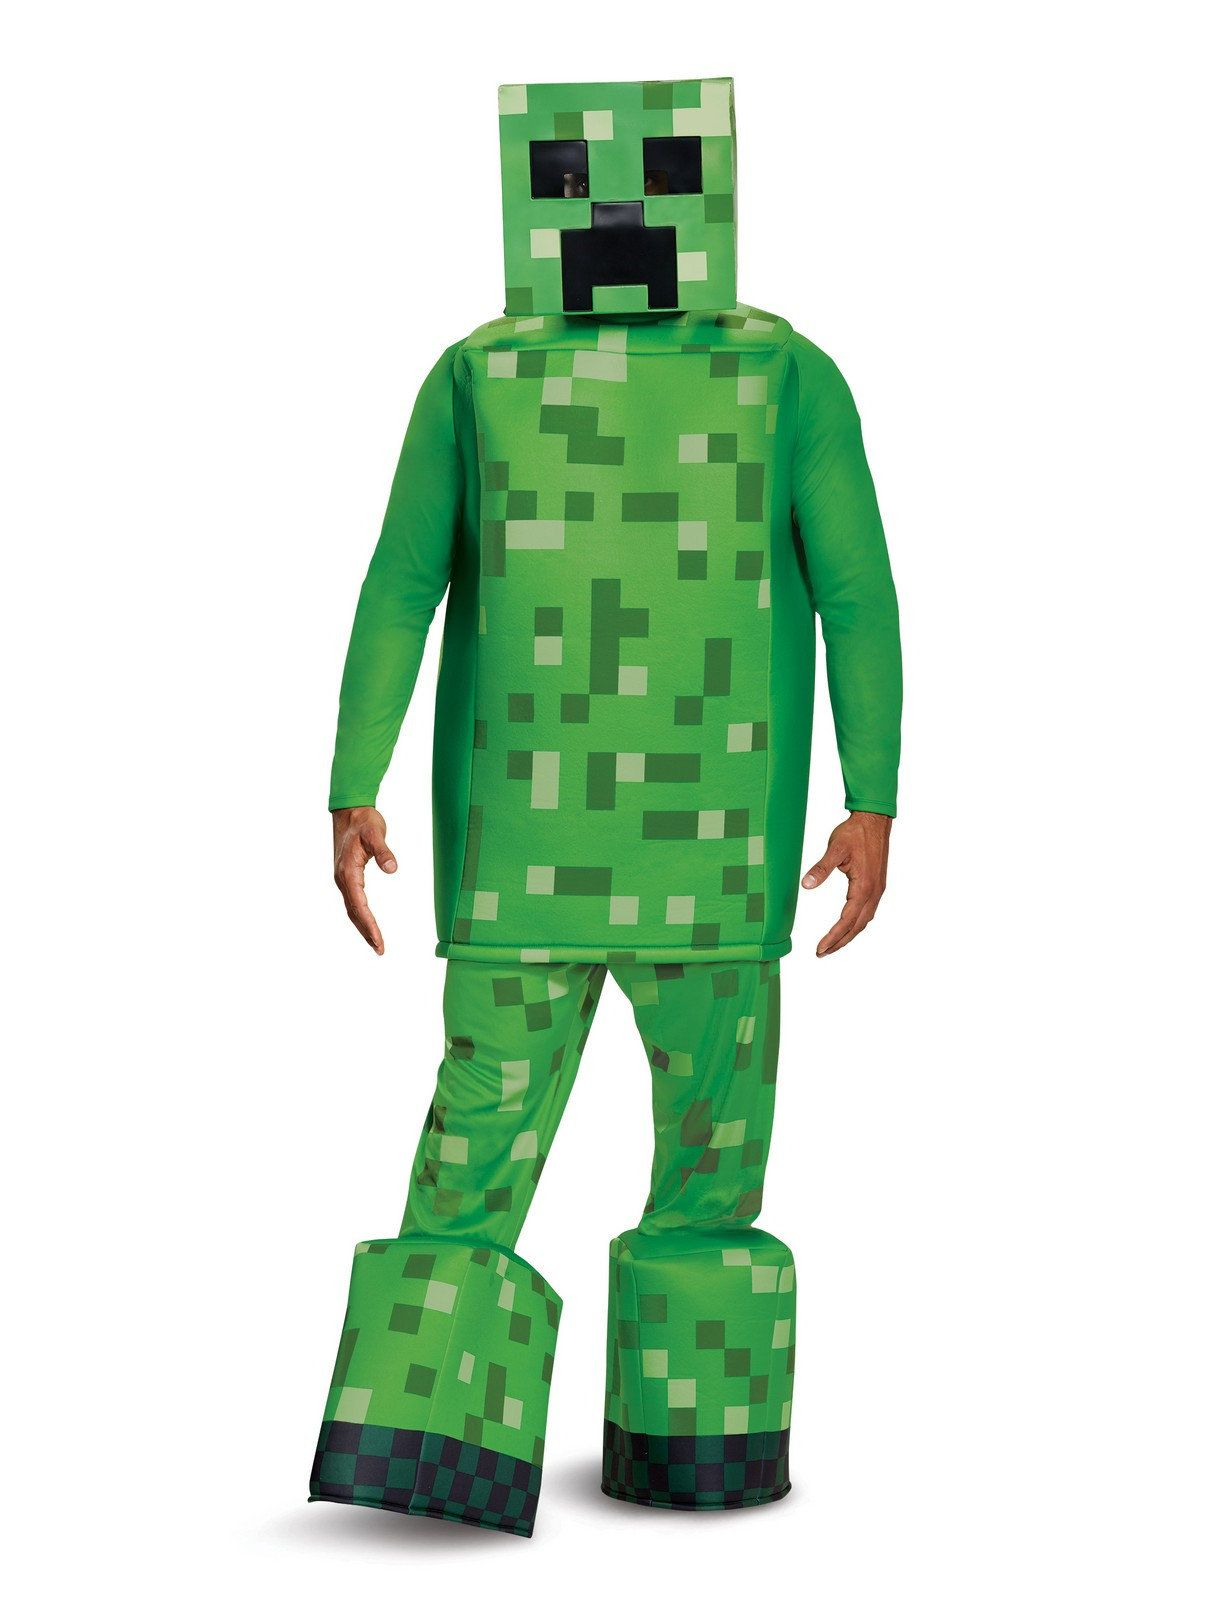 prestige minecraft creeper costume for adults - mens costumes for